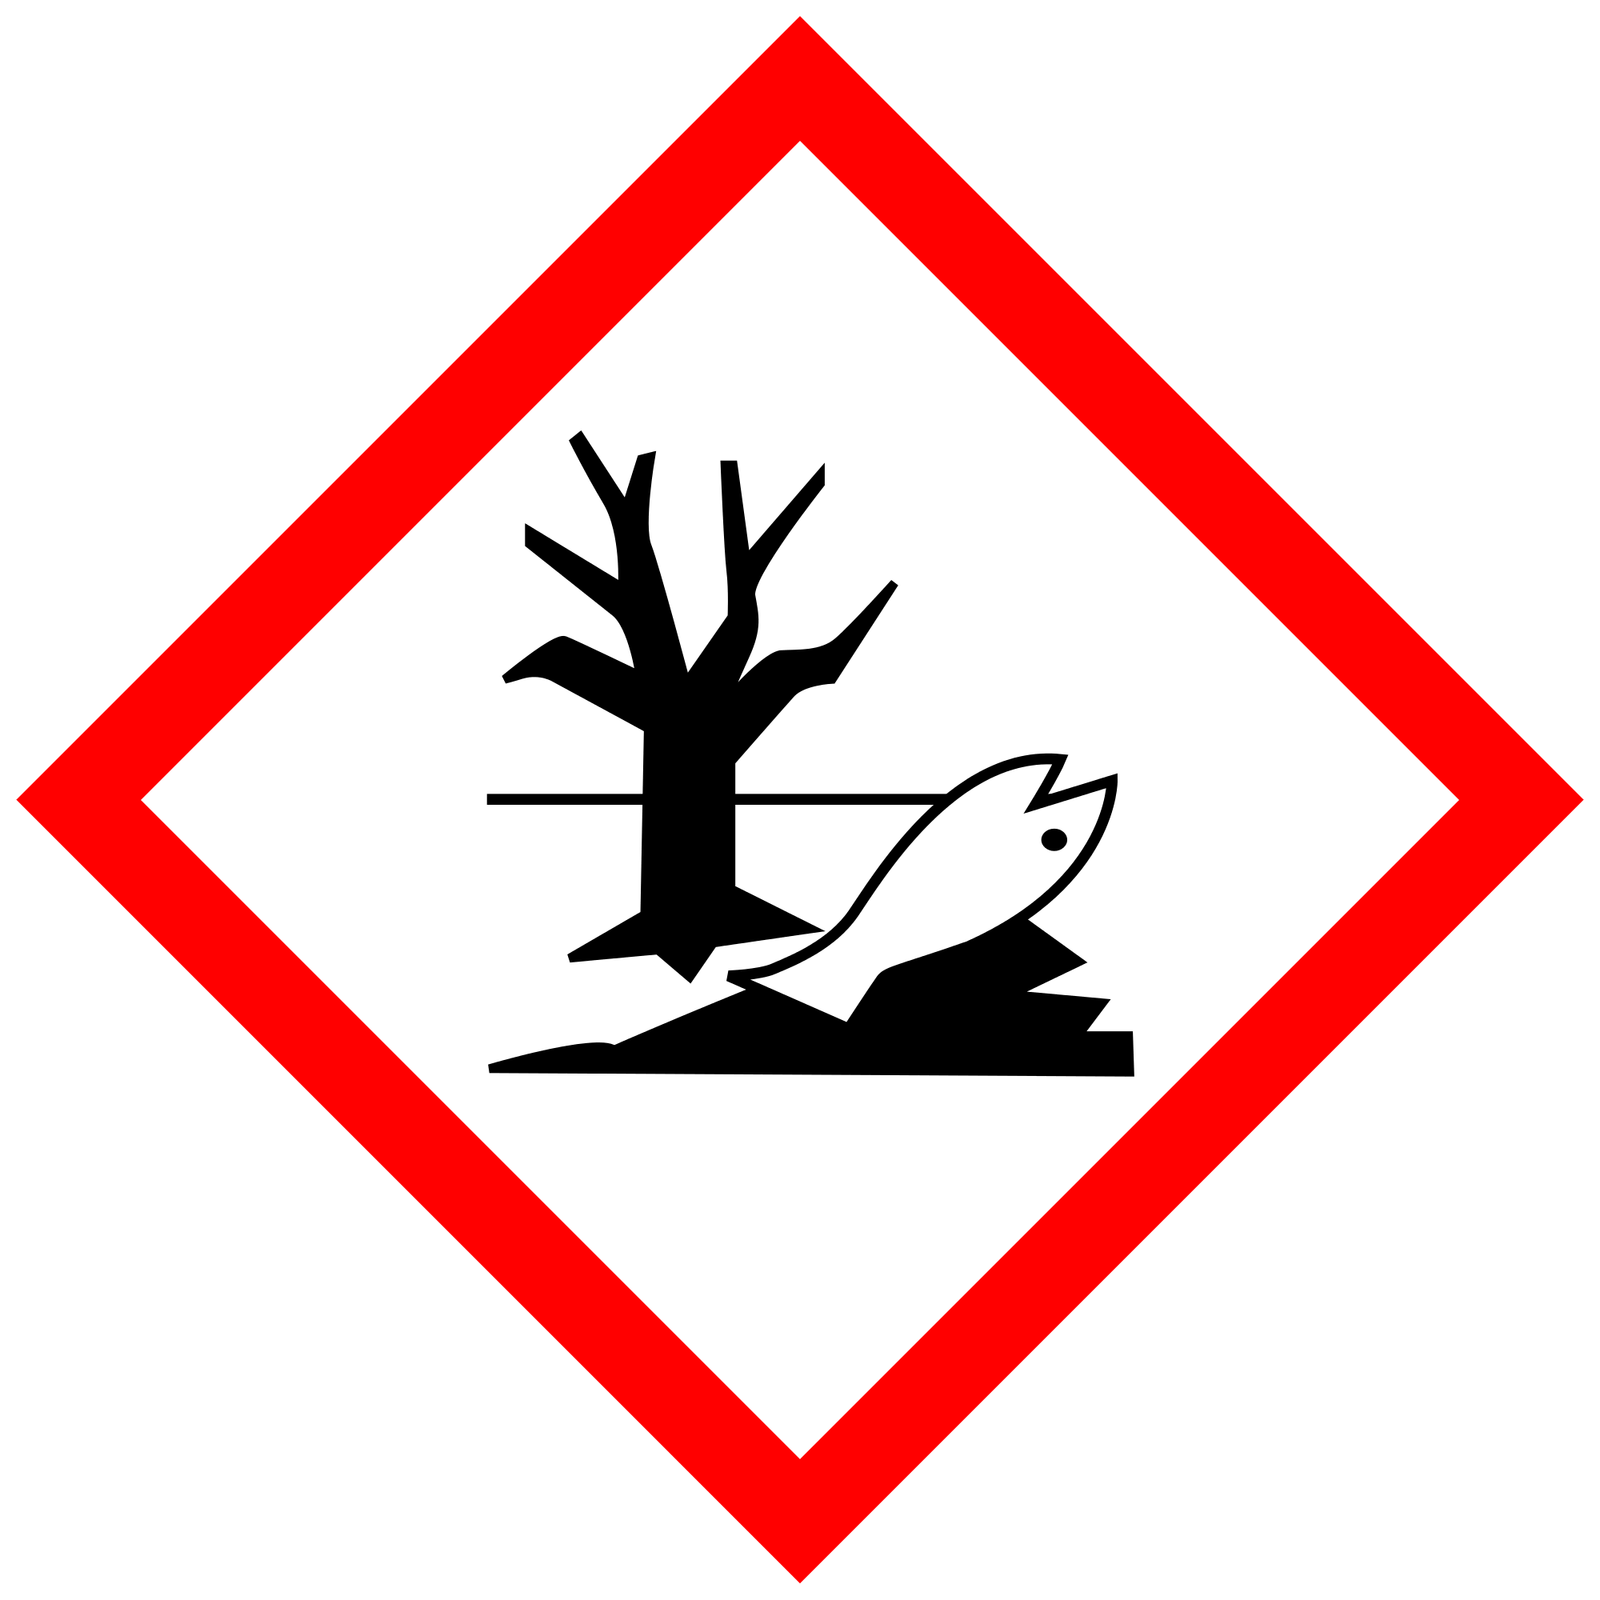 Dangerous properties of chemicals. Factory clipart factory fumes